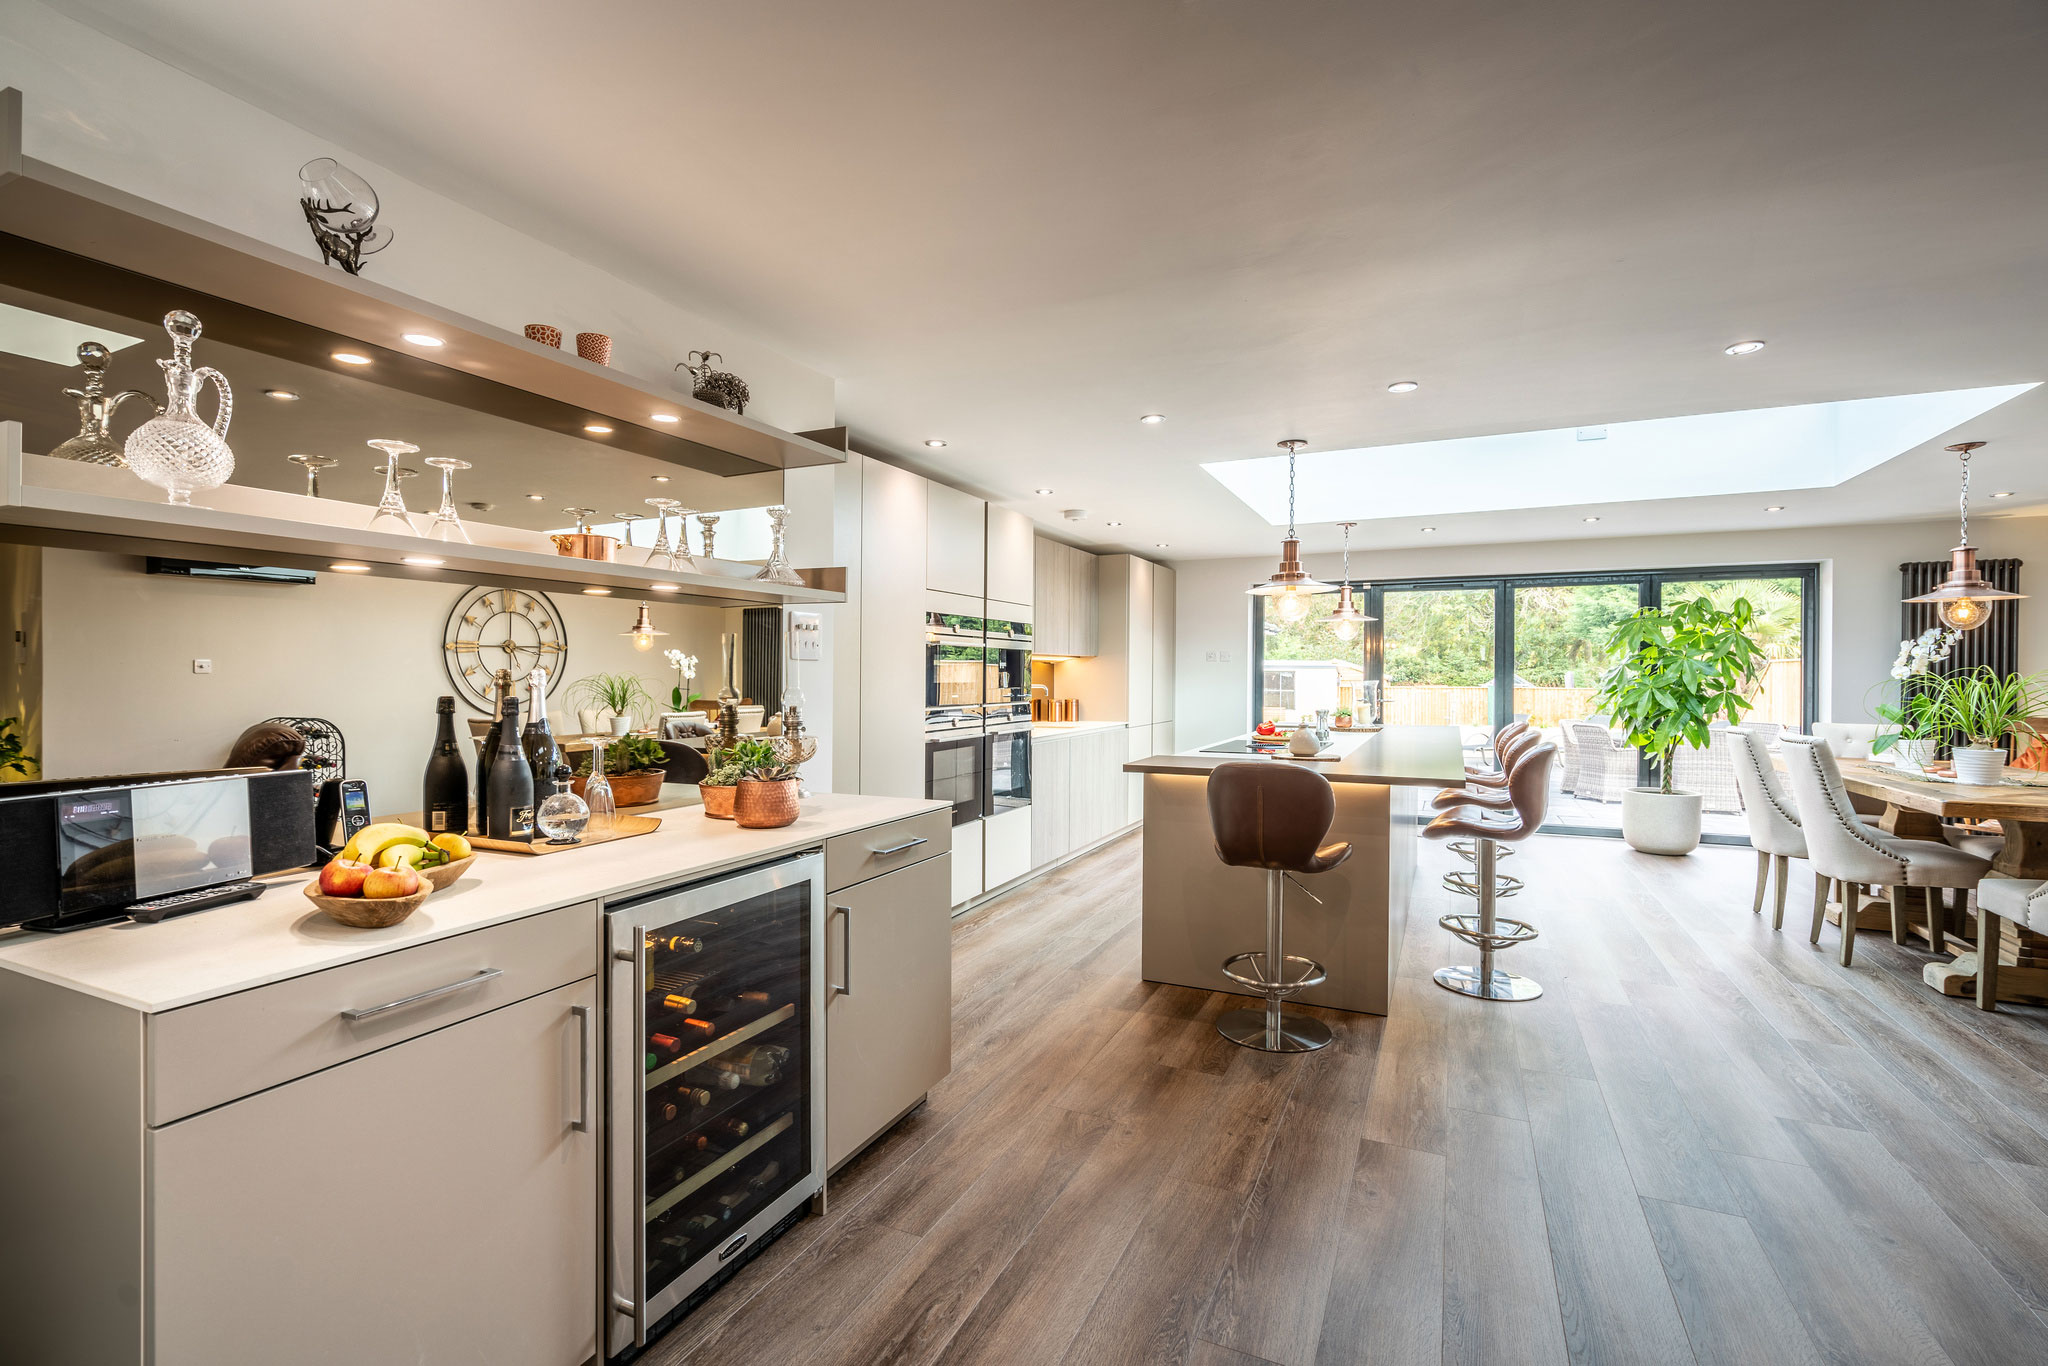 Image of Myers Touch Daniels Kitchen 01043 HDR ZF 2442 14358 1 035 in A space designed for socialising - Cosentino